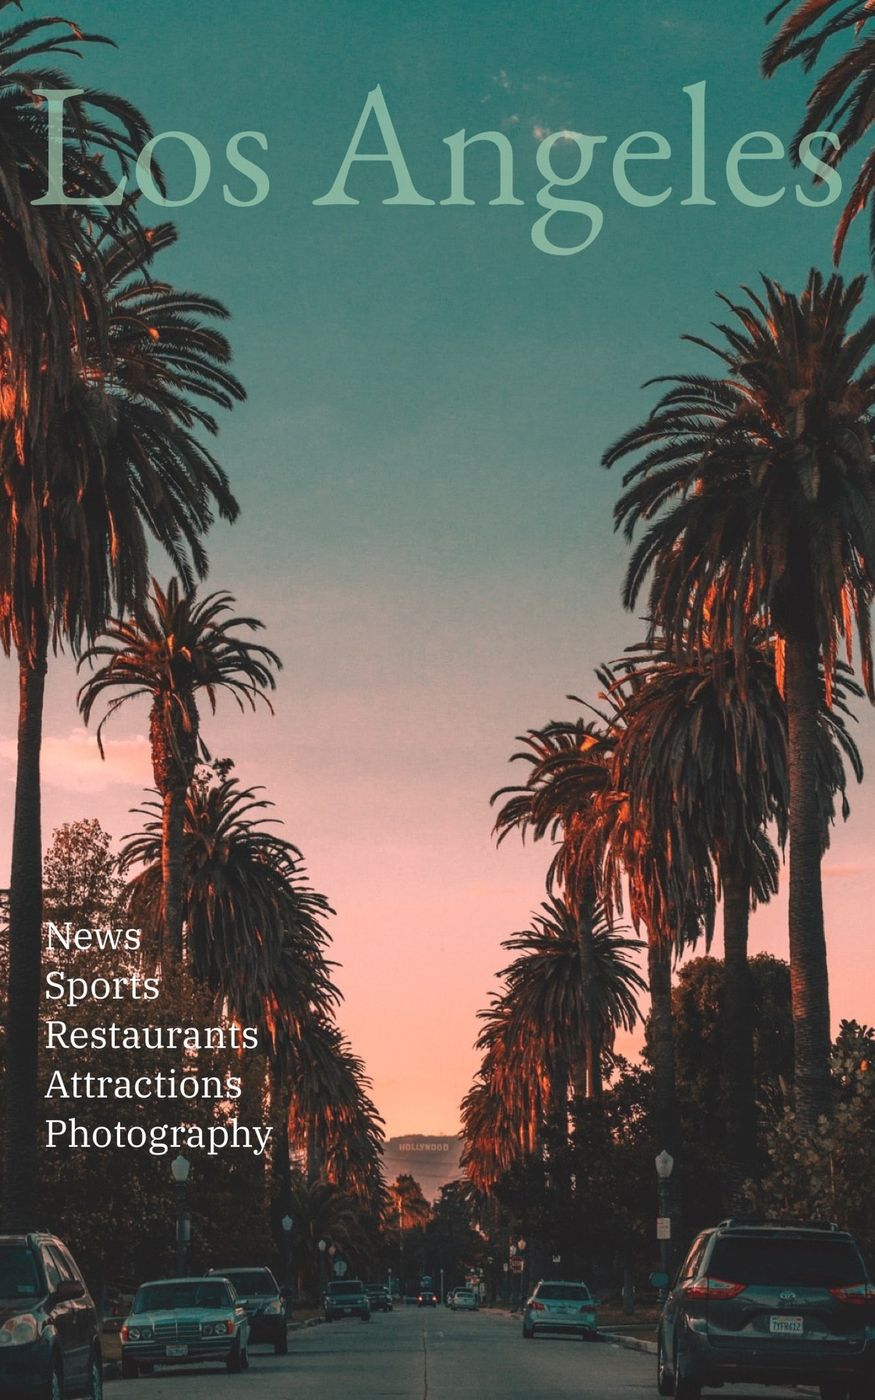 """Los Angeles - News, Sports, Restaurants, Attractions and Photography  <br /><br />Photo by <a href=""""https://unsplash.com/@thisisflik?utm_source=magma&utm_medium=referral"""">Steven Pahel</a> on <a href=""""https://unsplash.com/?utm_source=magma&utm_medium=referral"""">Unsplash</a>"""